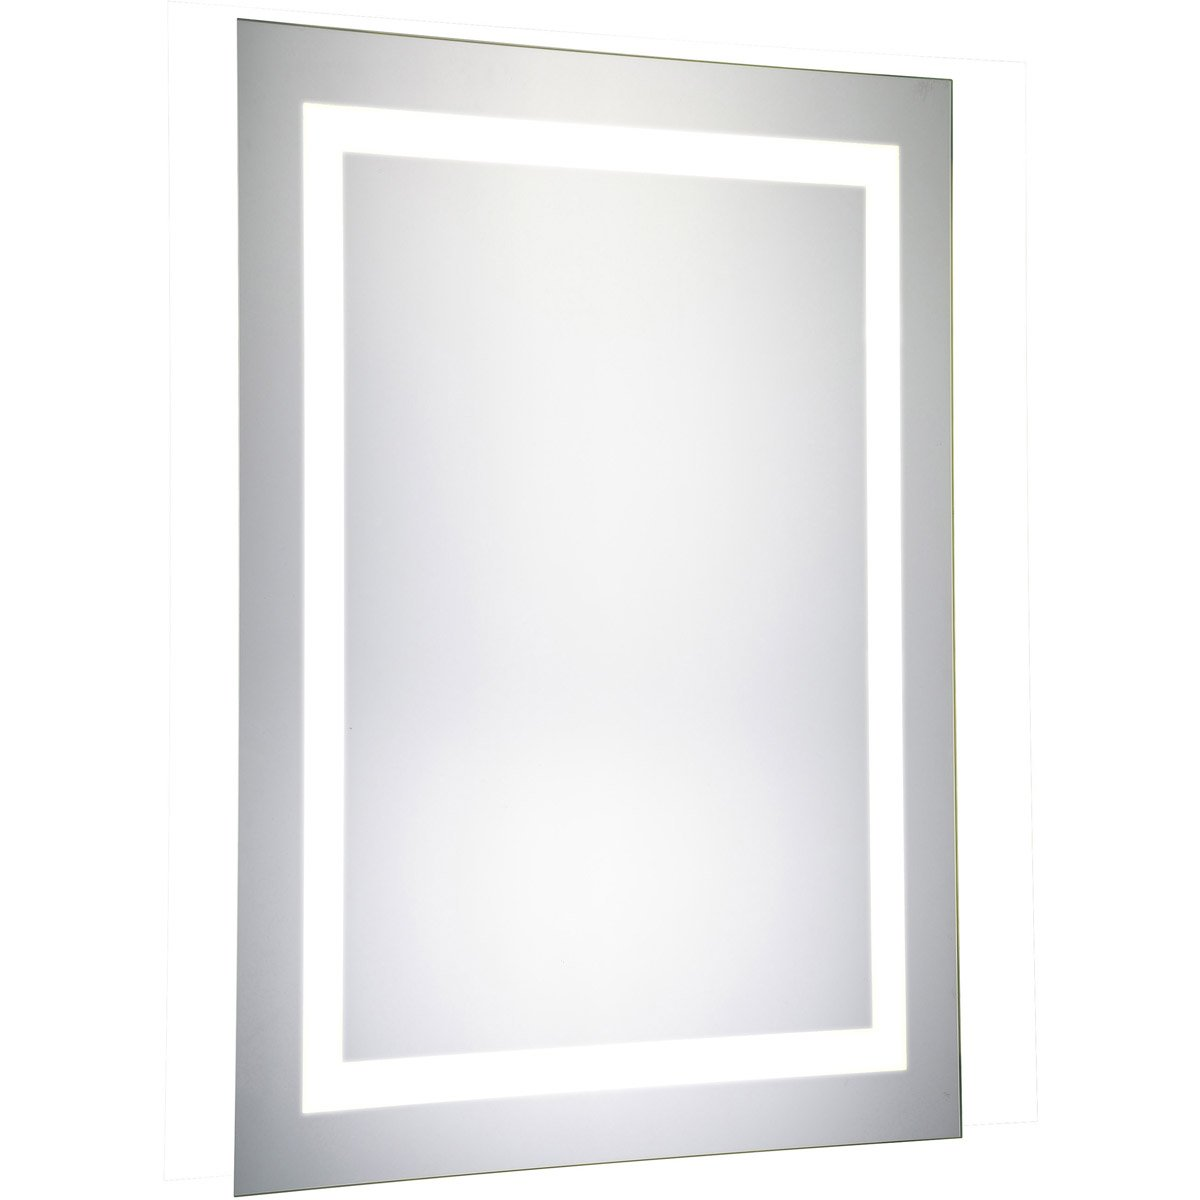 Nova 40 X 20 Hardwired Glossy White Led Wall Mirror (Mre-6002) Led Mirror